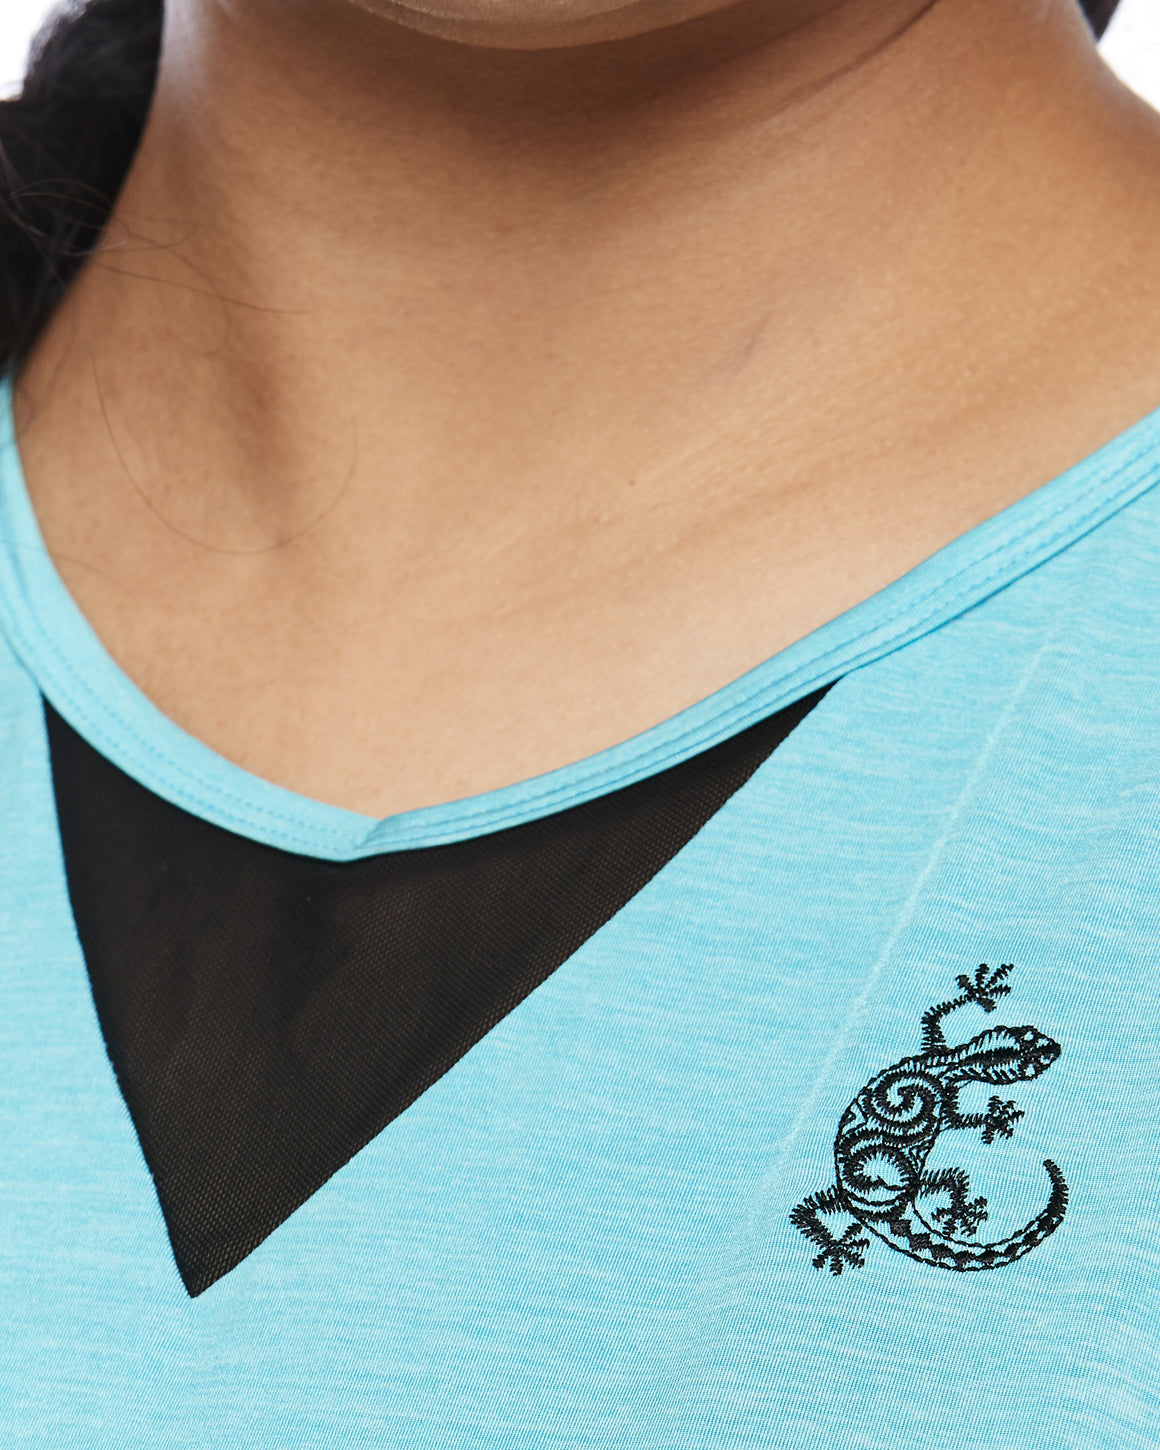 Embroidery and mesh insert detail Zest Short Sleeve Sports Top for Plus Size from Lowanna Australia